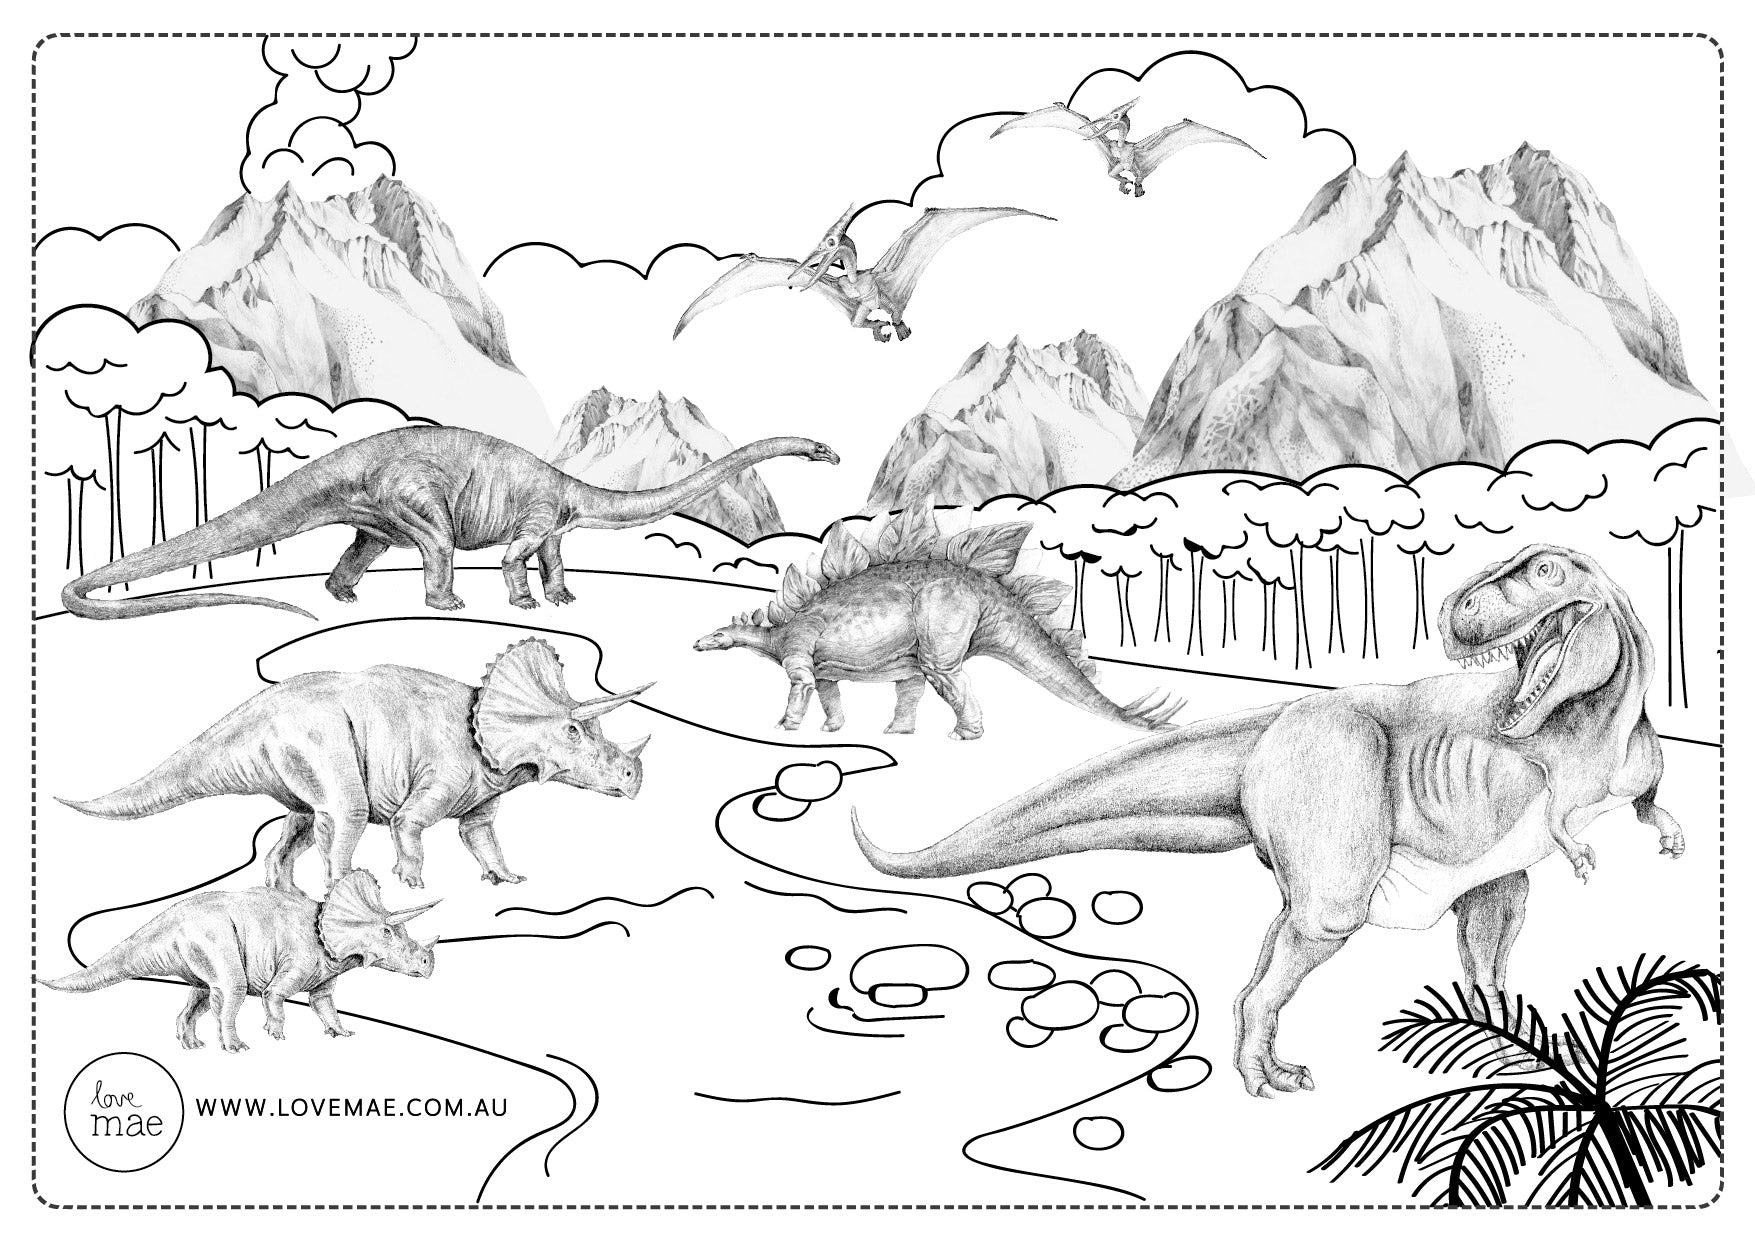 Love_Mae_Colouring_In_Dinosaur_Invasion